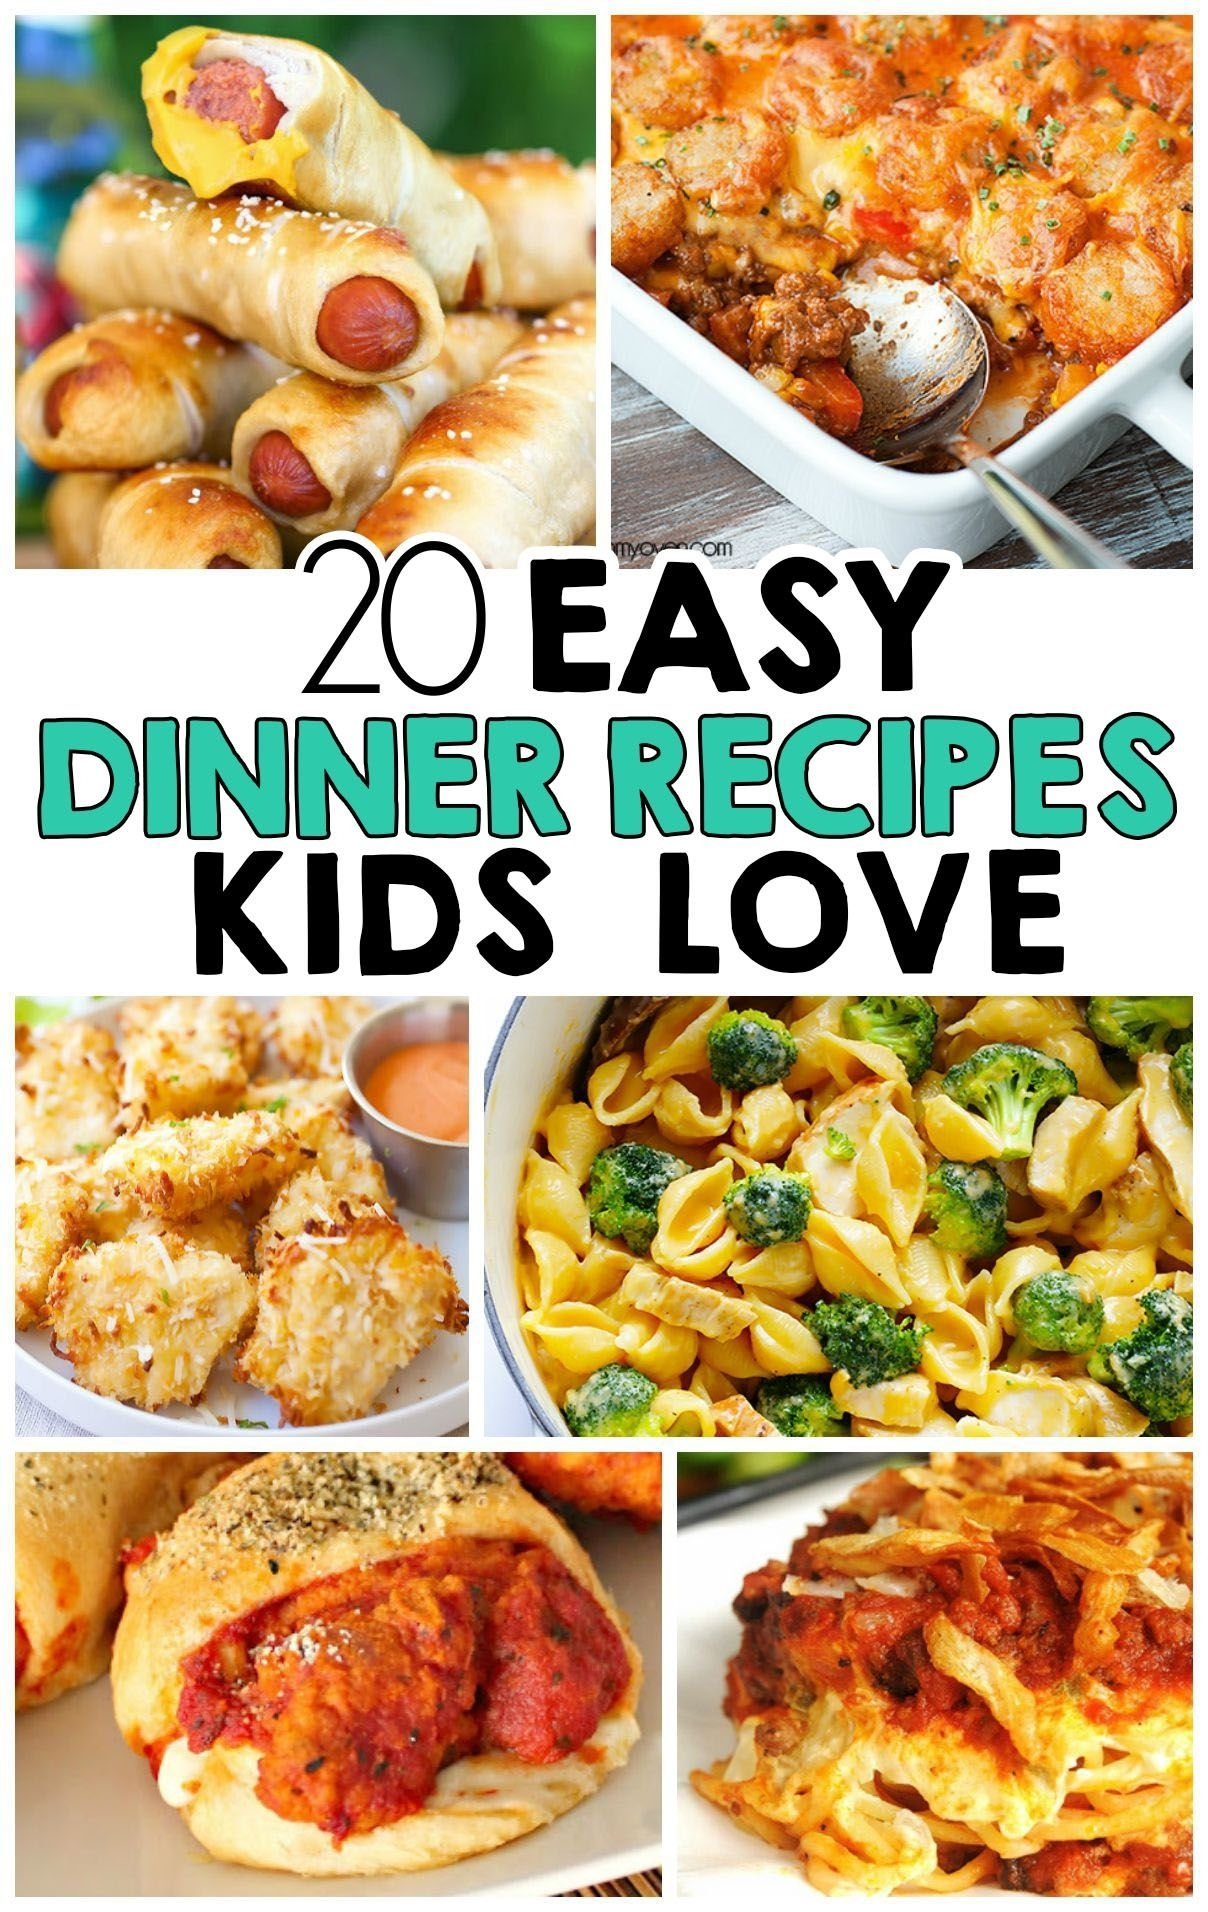 10 Lovable Easy Meal Ideas For Kids 20 easy dinner recipes that kids love dinners easy and recipes 10 2020